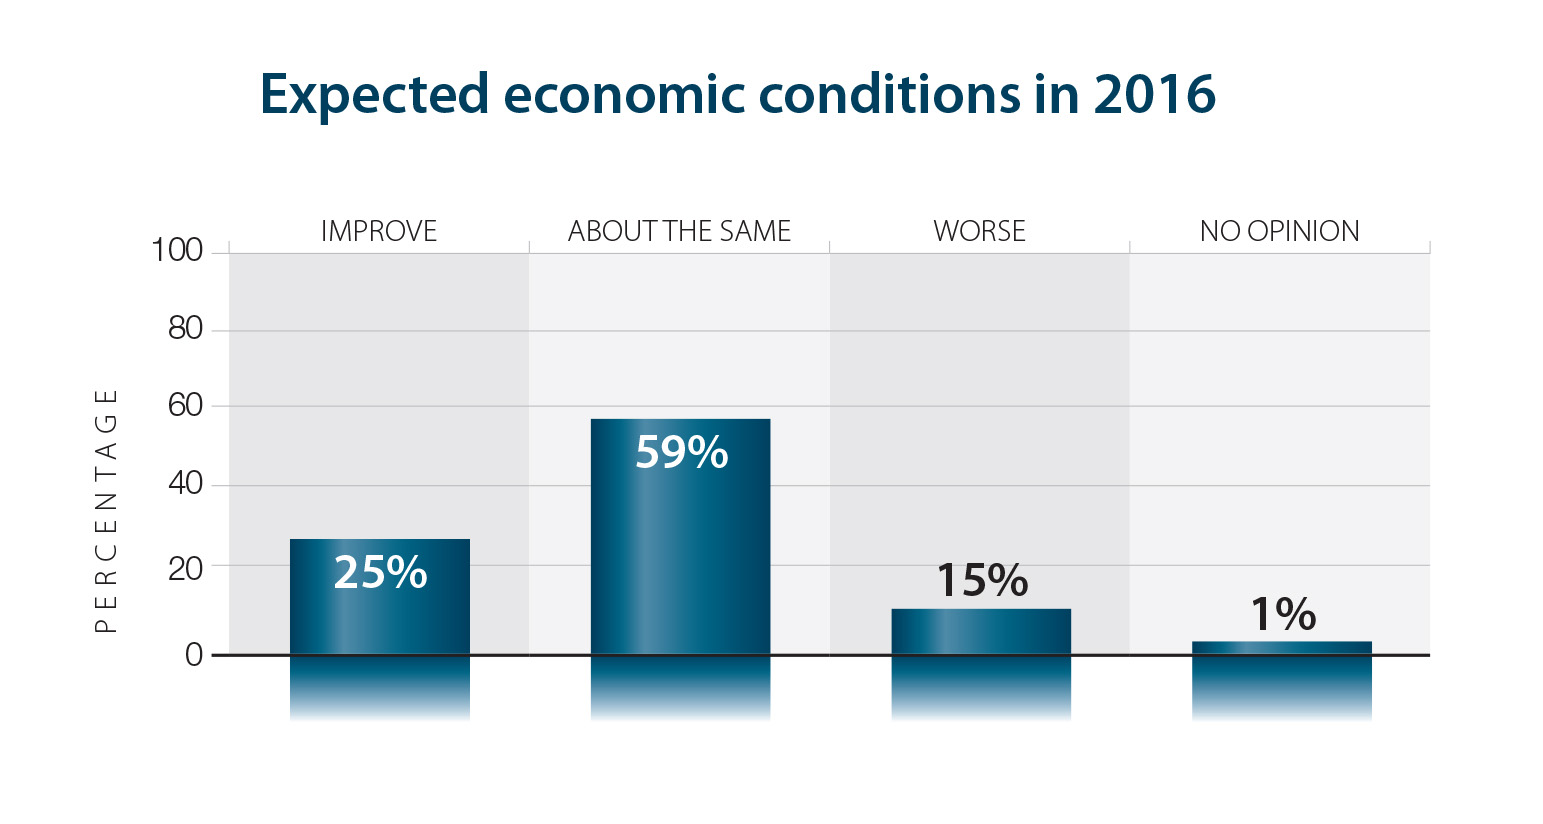 Expected economic conditions in 2016